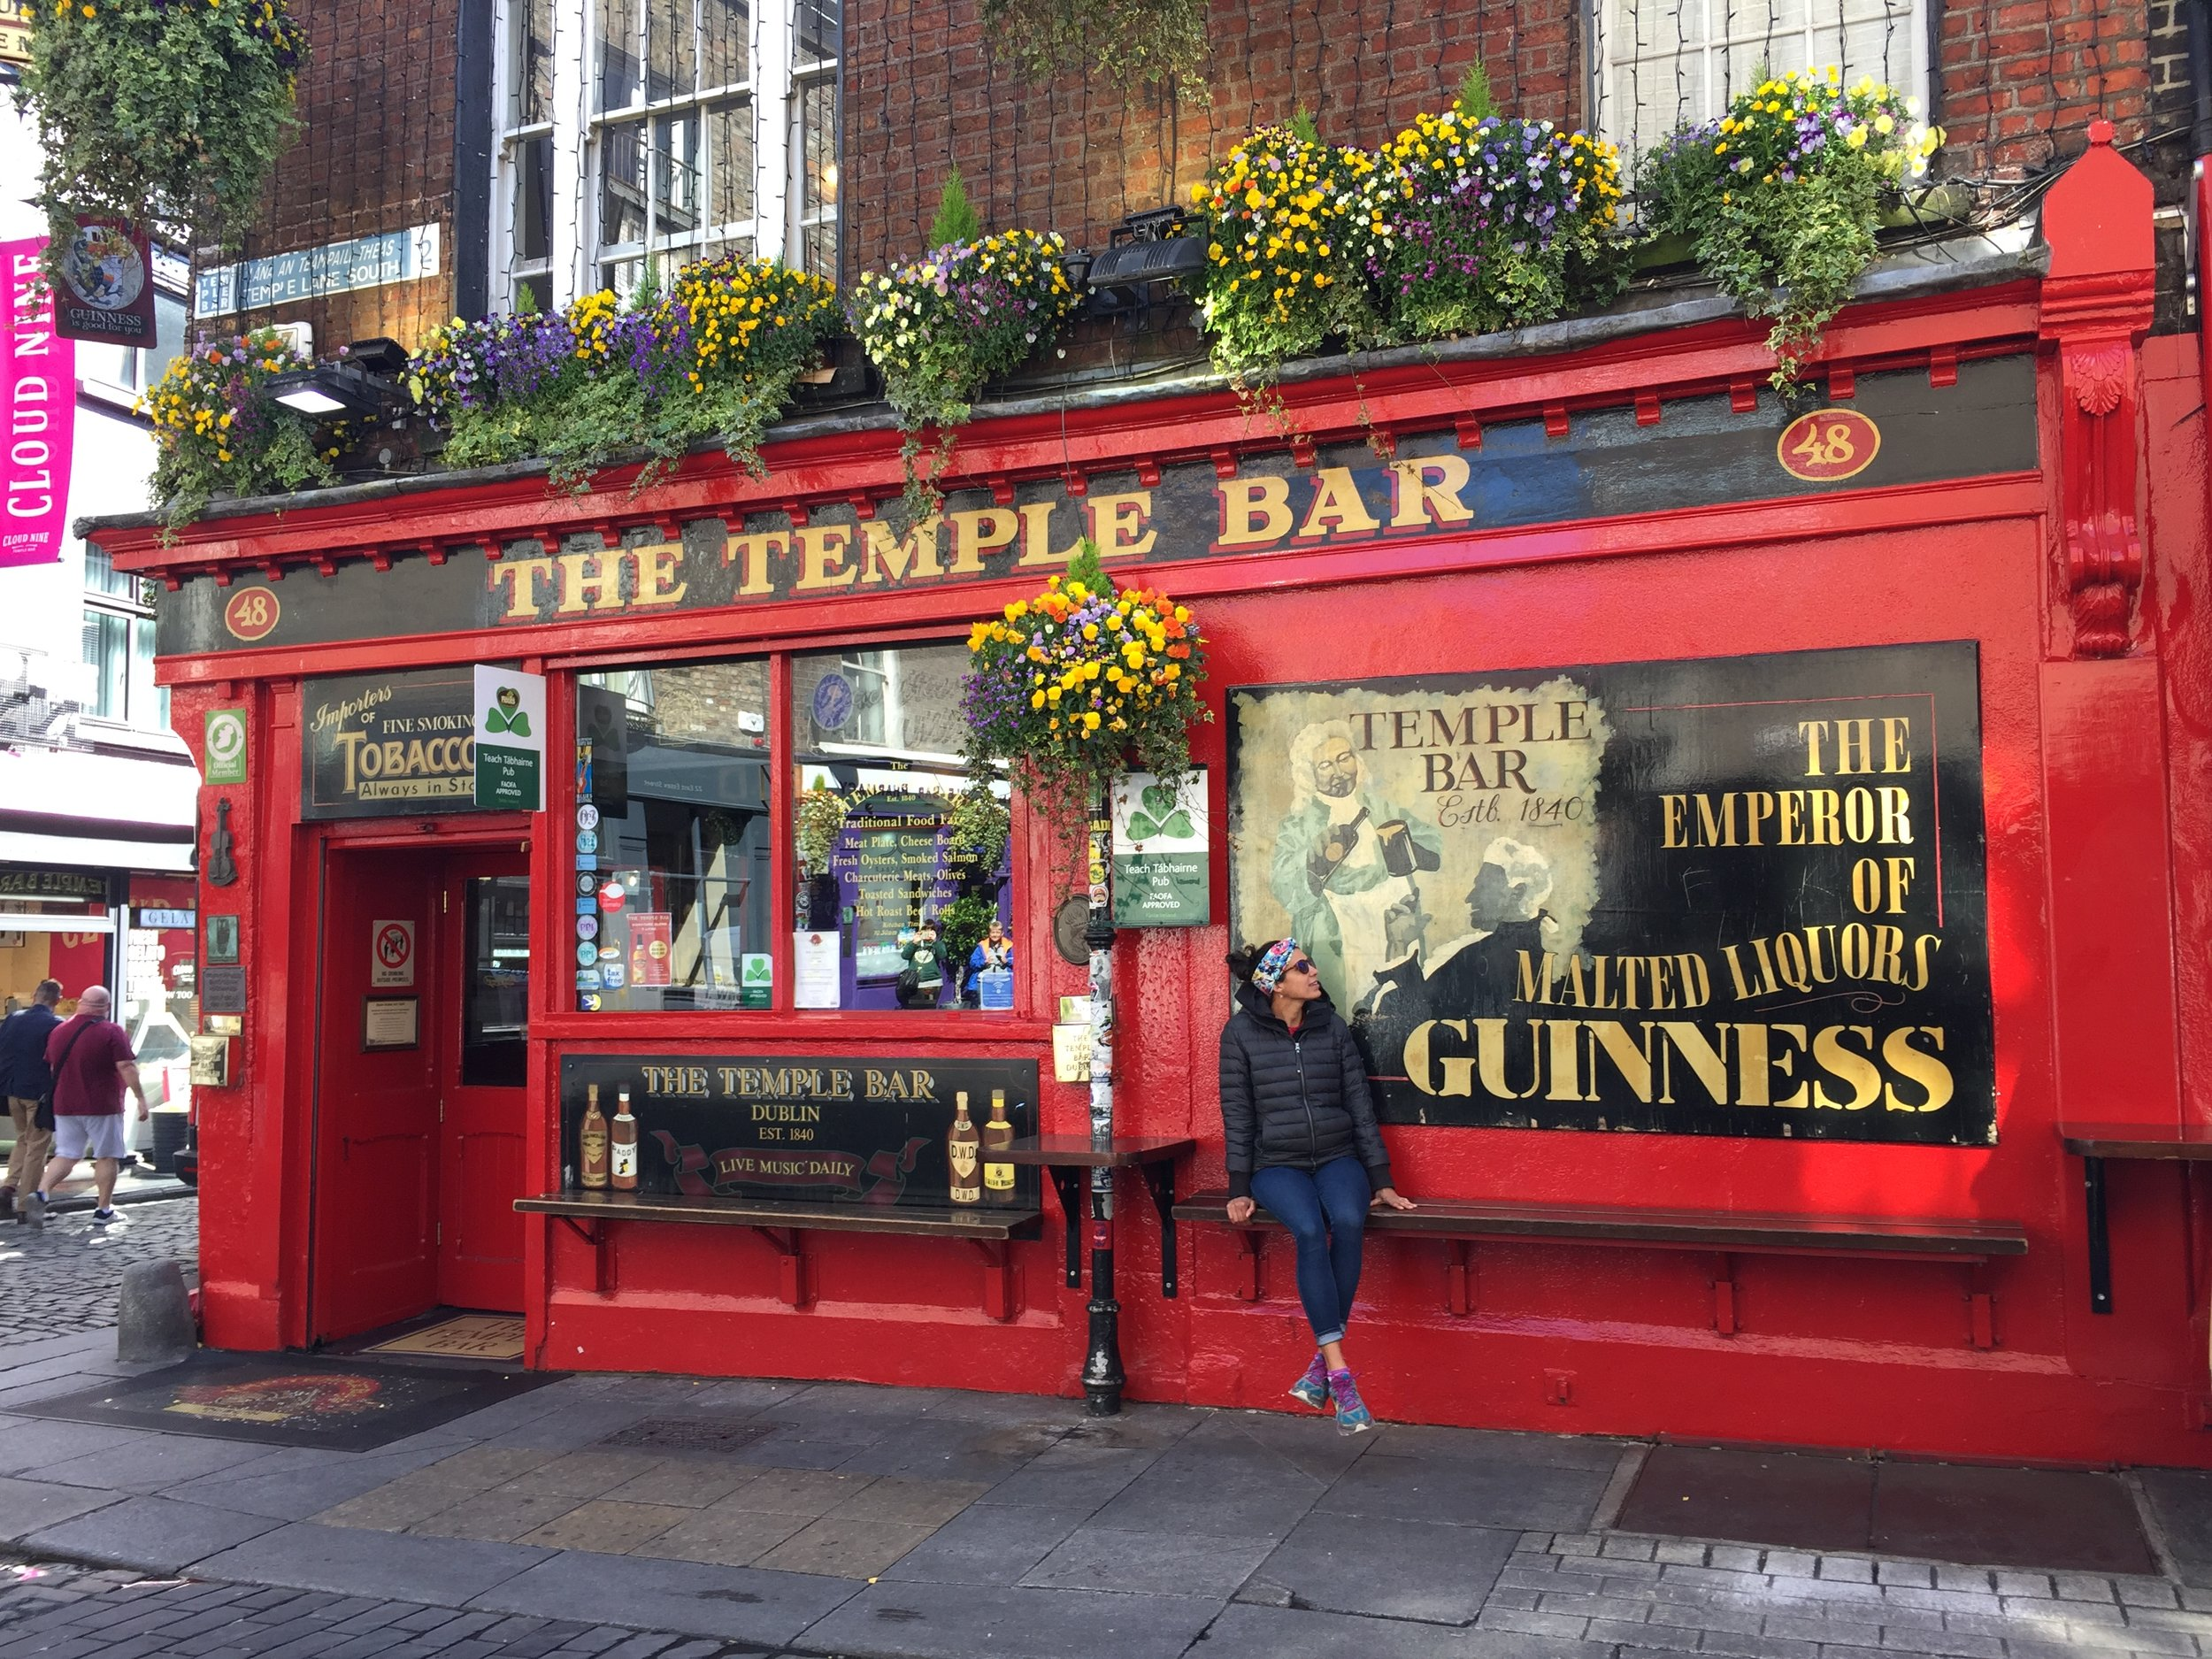 A visit to Temple Bar neighborhood and of course, The Temple Bar itself